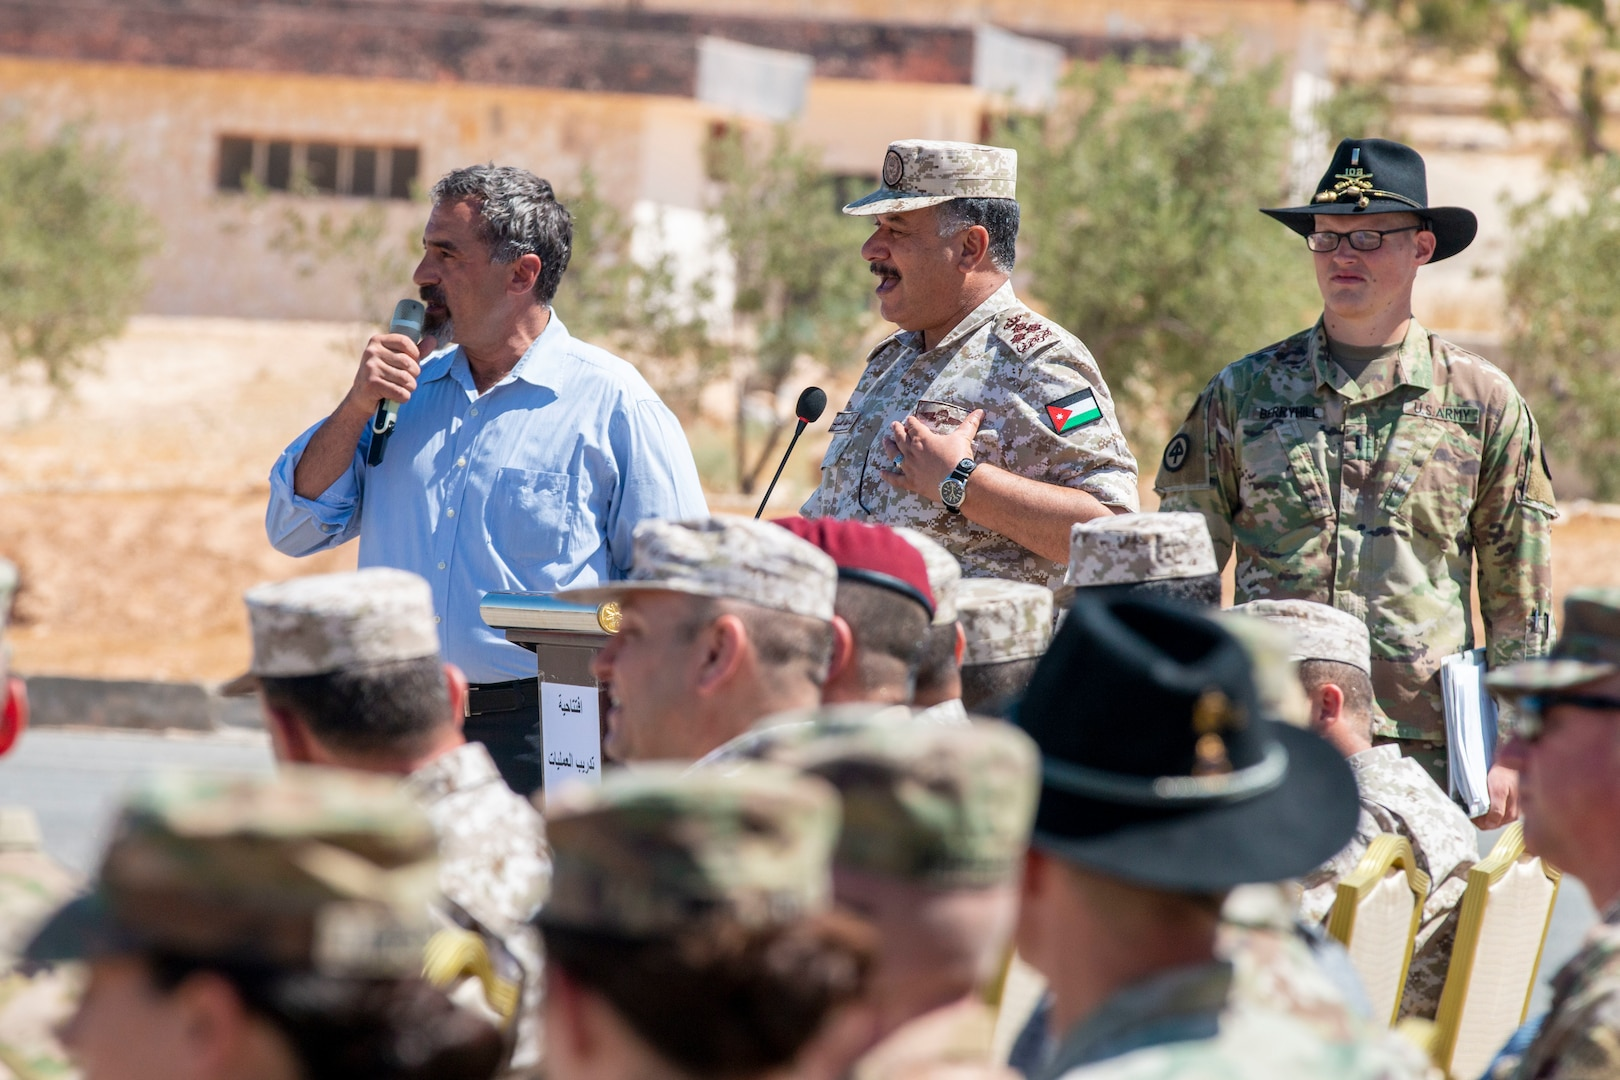 Jordan Armed Forces Brig. Gen. Khalid Al-Masaeid (center), Northern region commander, speaks to New Jersey National Guard Soldiers, with 1st Squadron, 102nd Calvary Regiment, and Jordan Border Guard Force Soldiers, with the 7th Mechanized Battalion, 48th Mechanized Brigade, during the Jordan Operational Engagement Program (JOEP) opening ceremony July 14, 2019. JOEP is a 14-week individual and collective training, as well as a military partnership between Jordan and America.